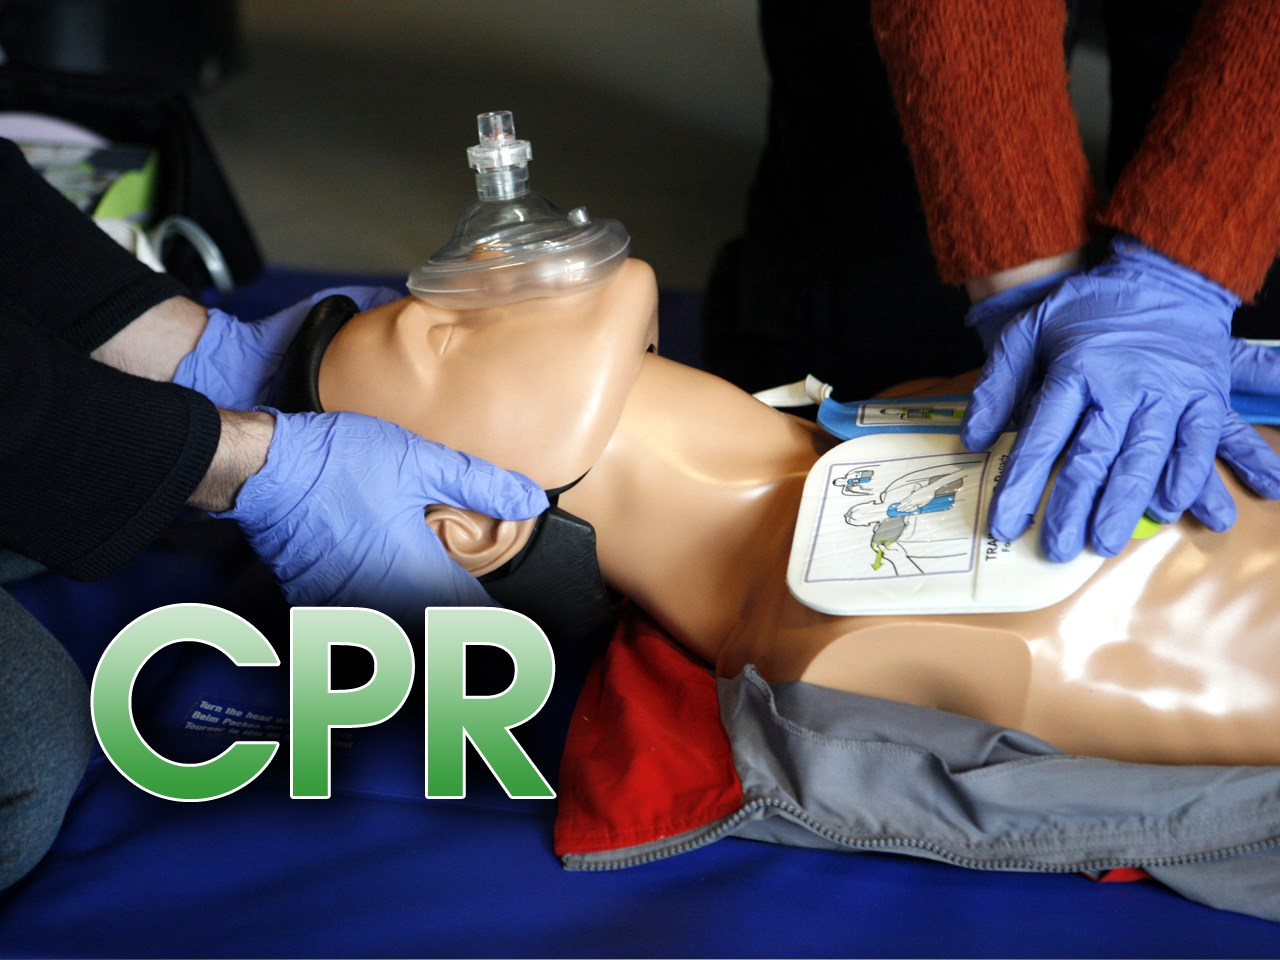 CPR_134671